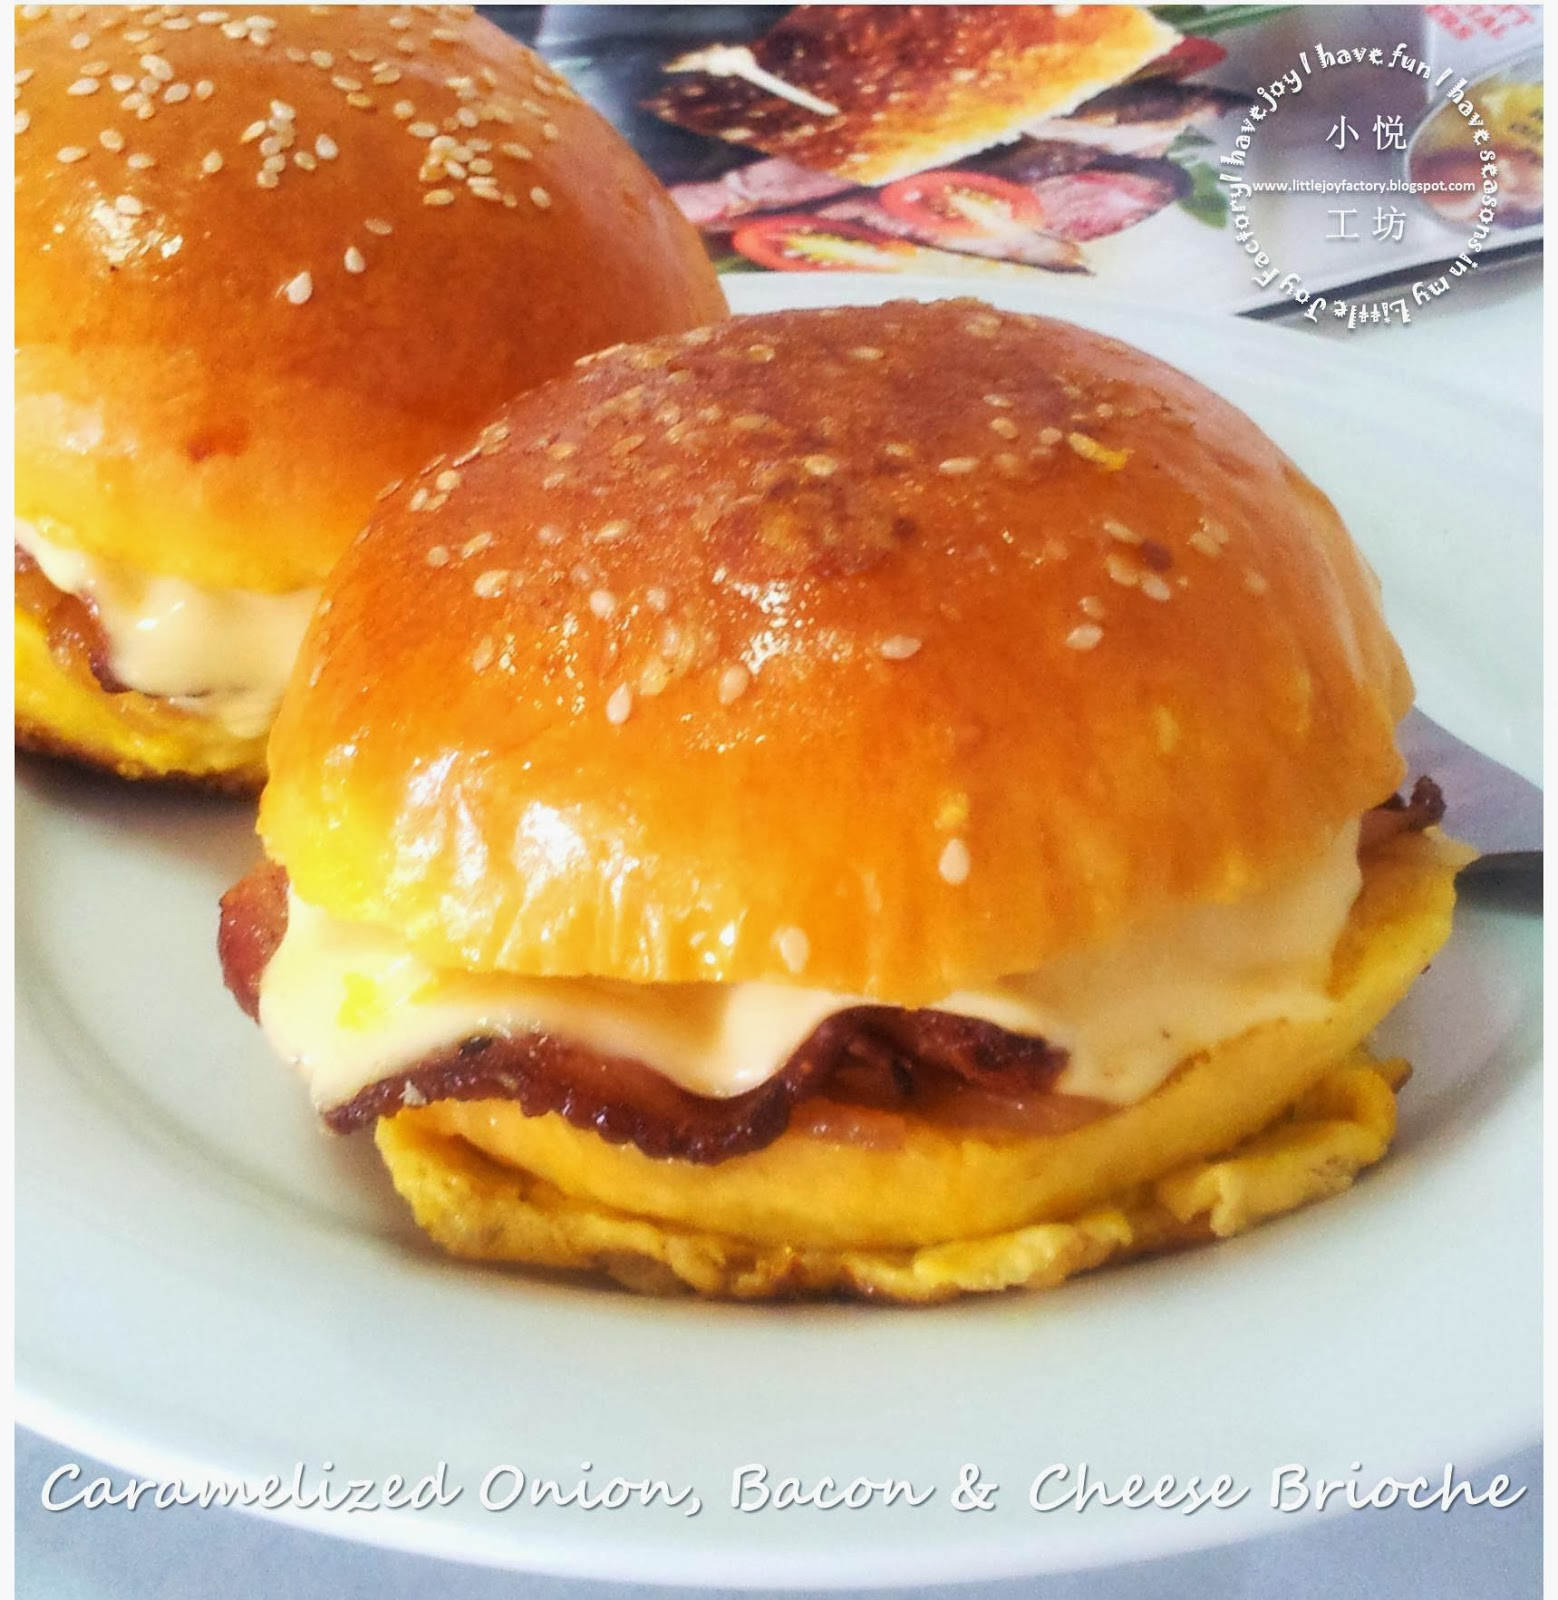 Little joy factory caramelized onion bacon and cheese brioche since we always use store bought bread for convenience its time to put in some effort and bake my own soft and rich bread browsed donna hays ccuart Images